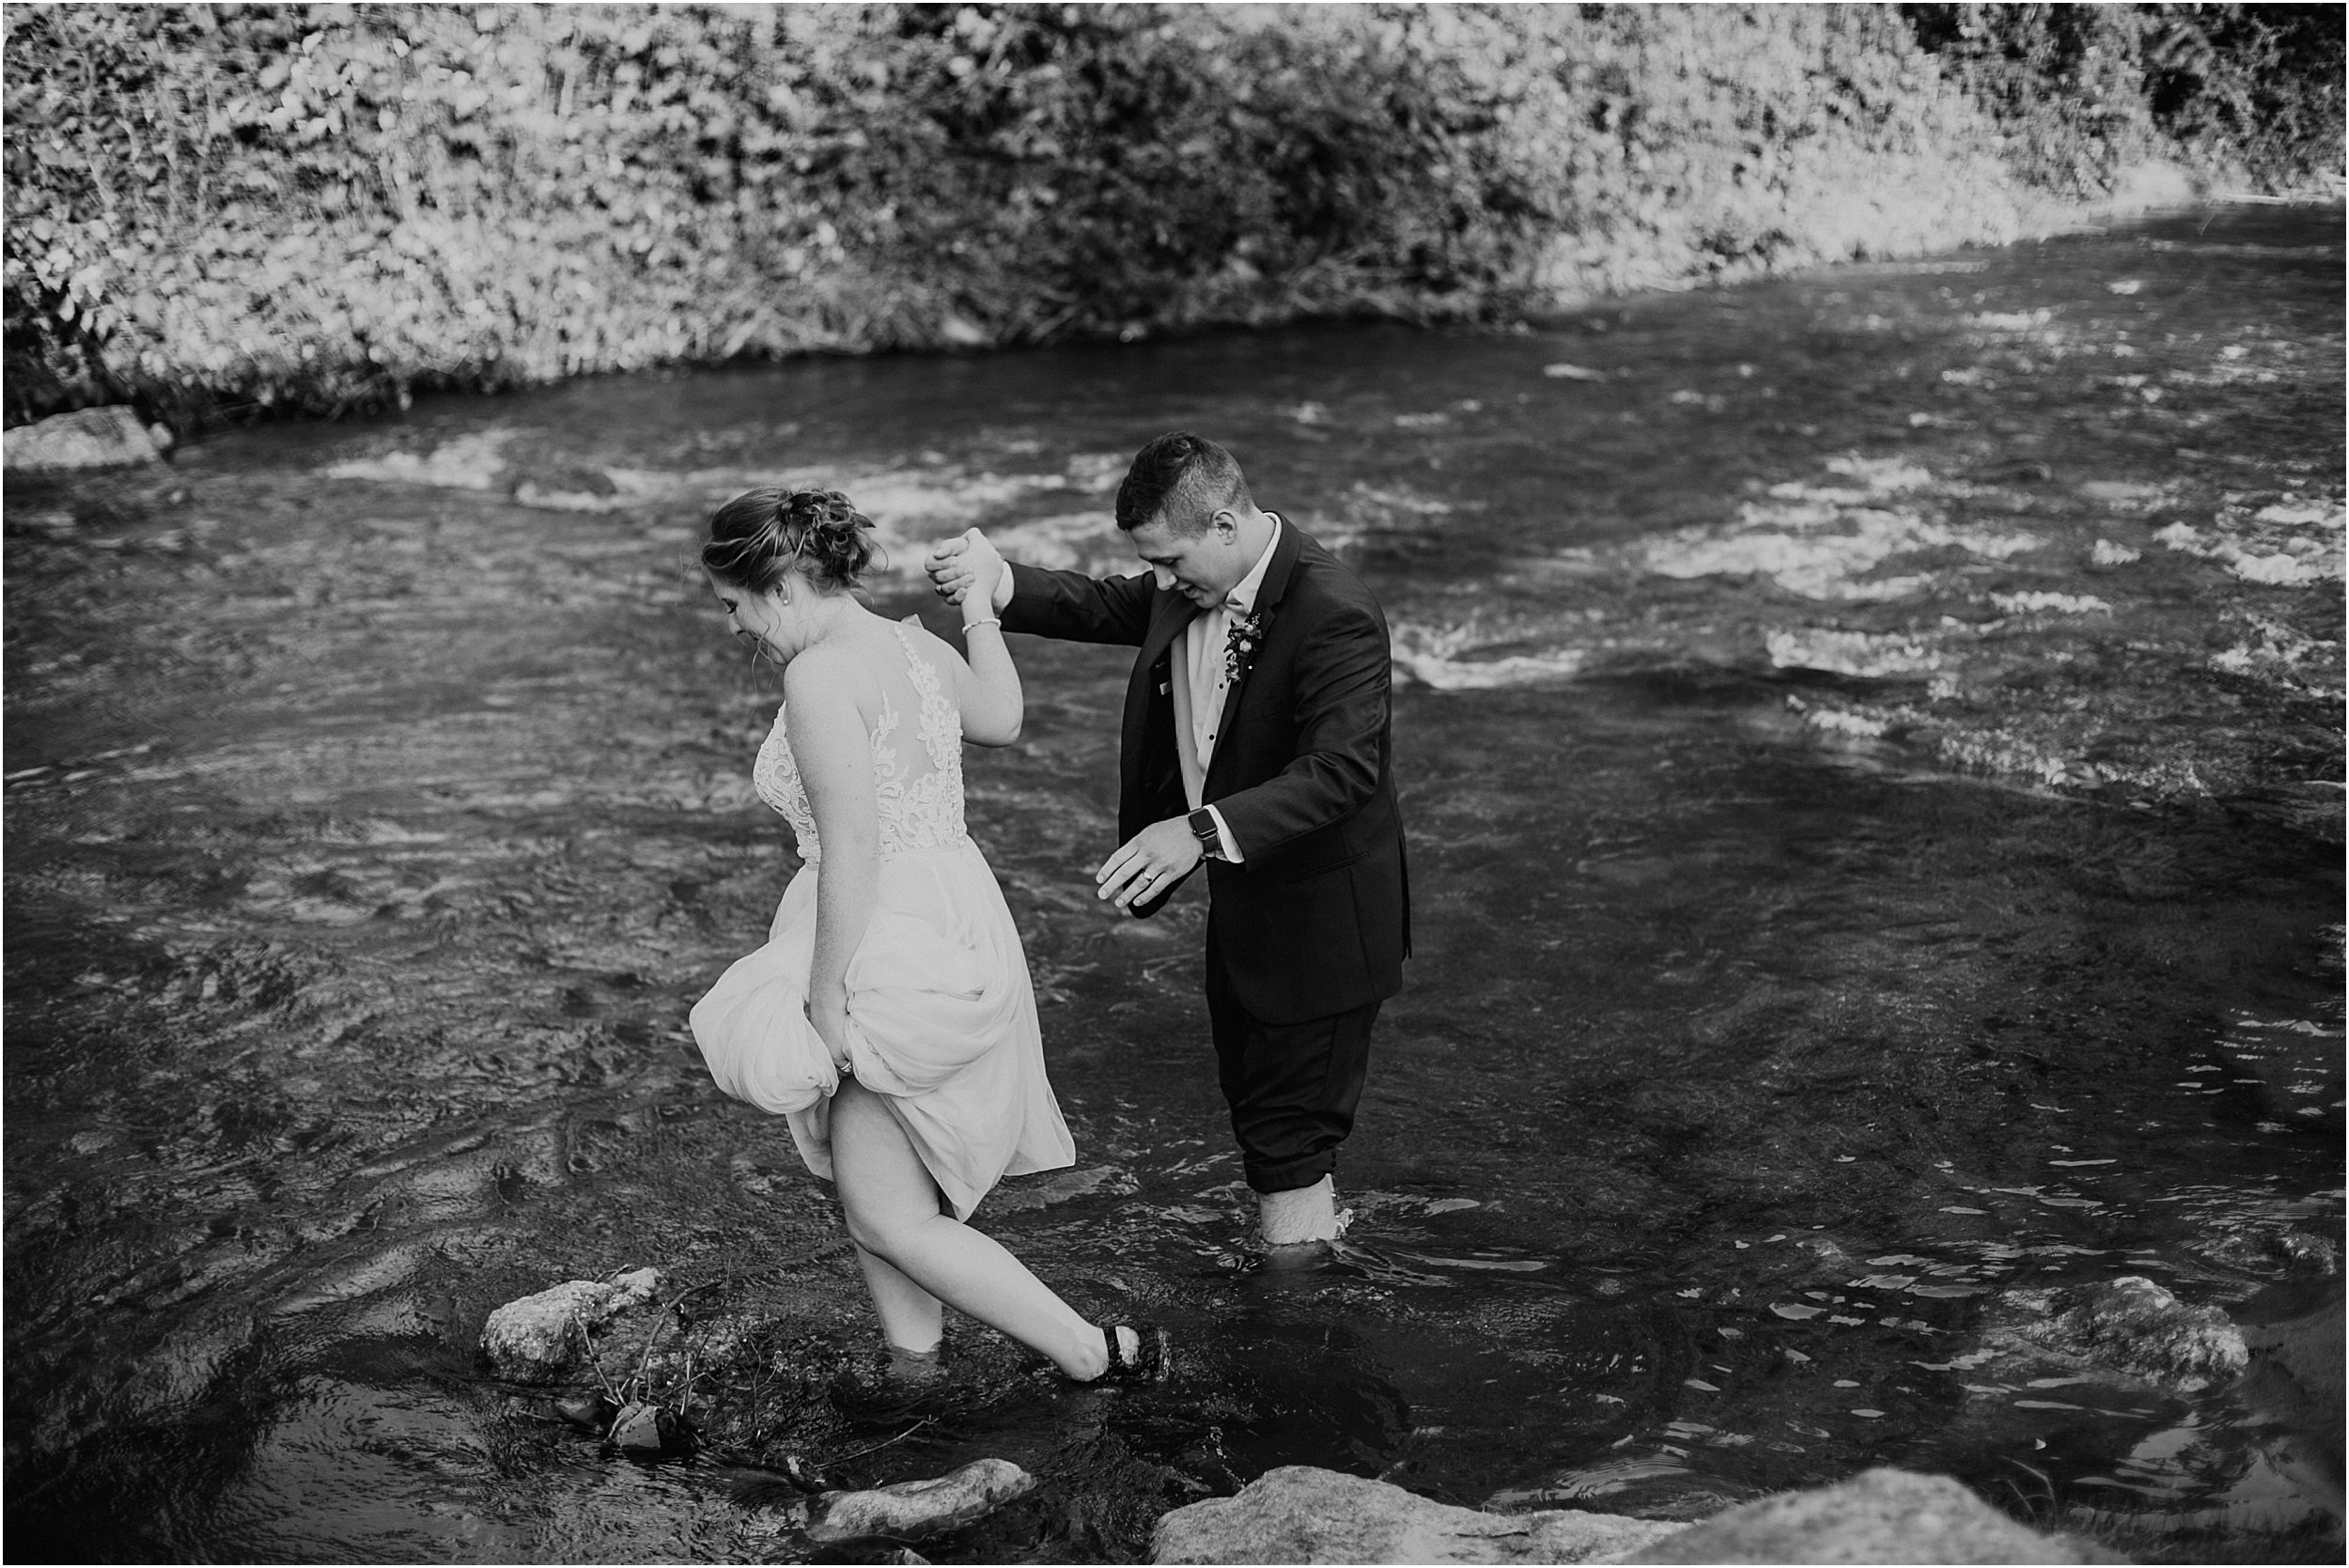 The image is black and white of a couple in wedding clothes. They are walking knee deep in a creek. His pants are rolled up and she is holding her wedding dress with one hand while holding his hand to balance.